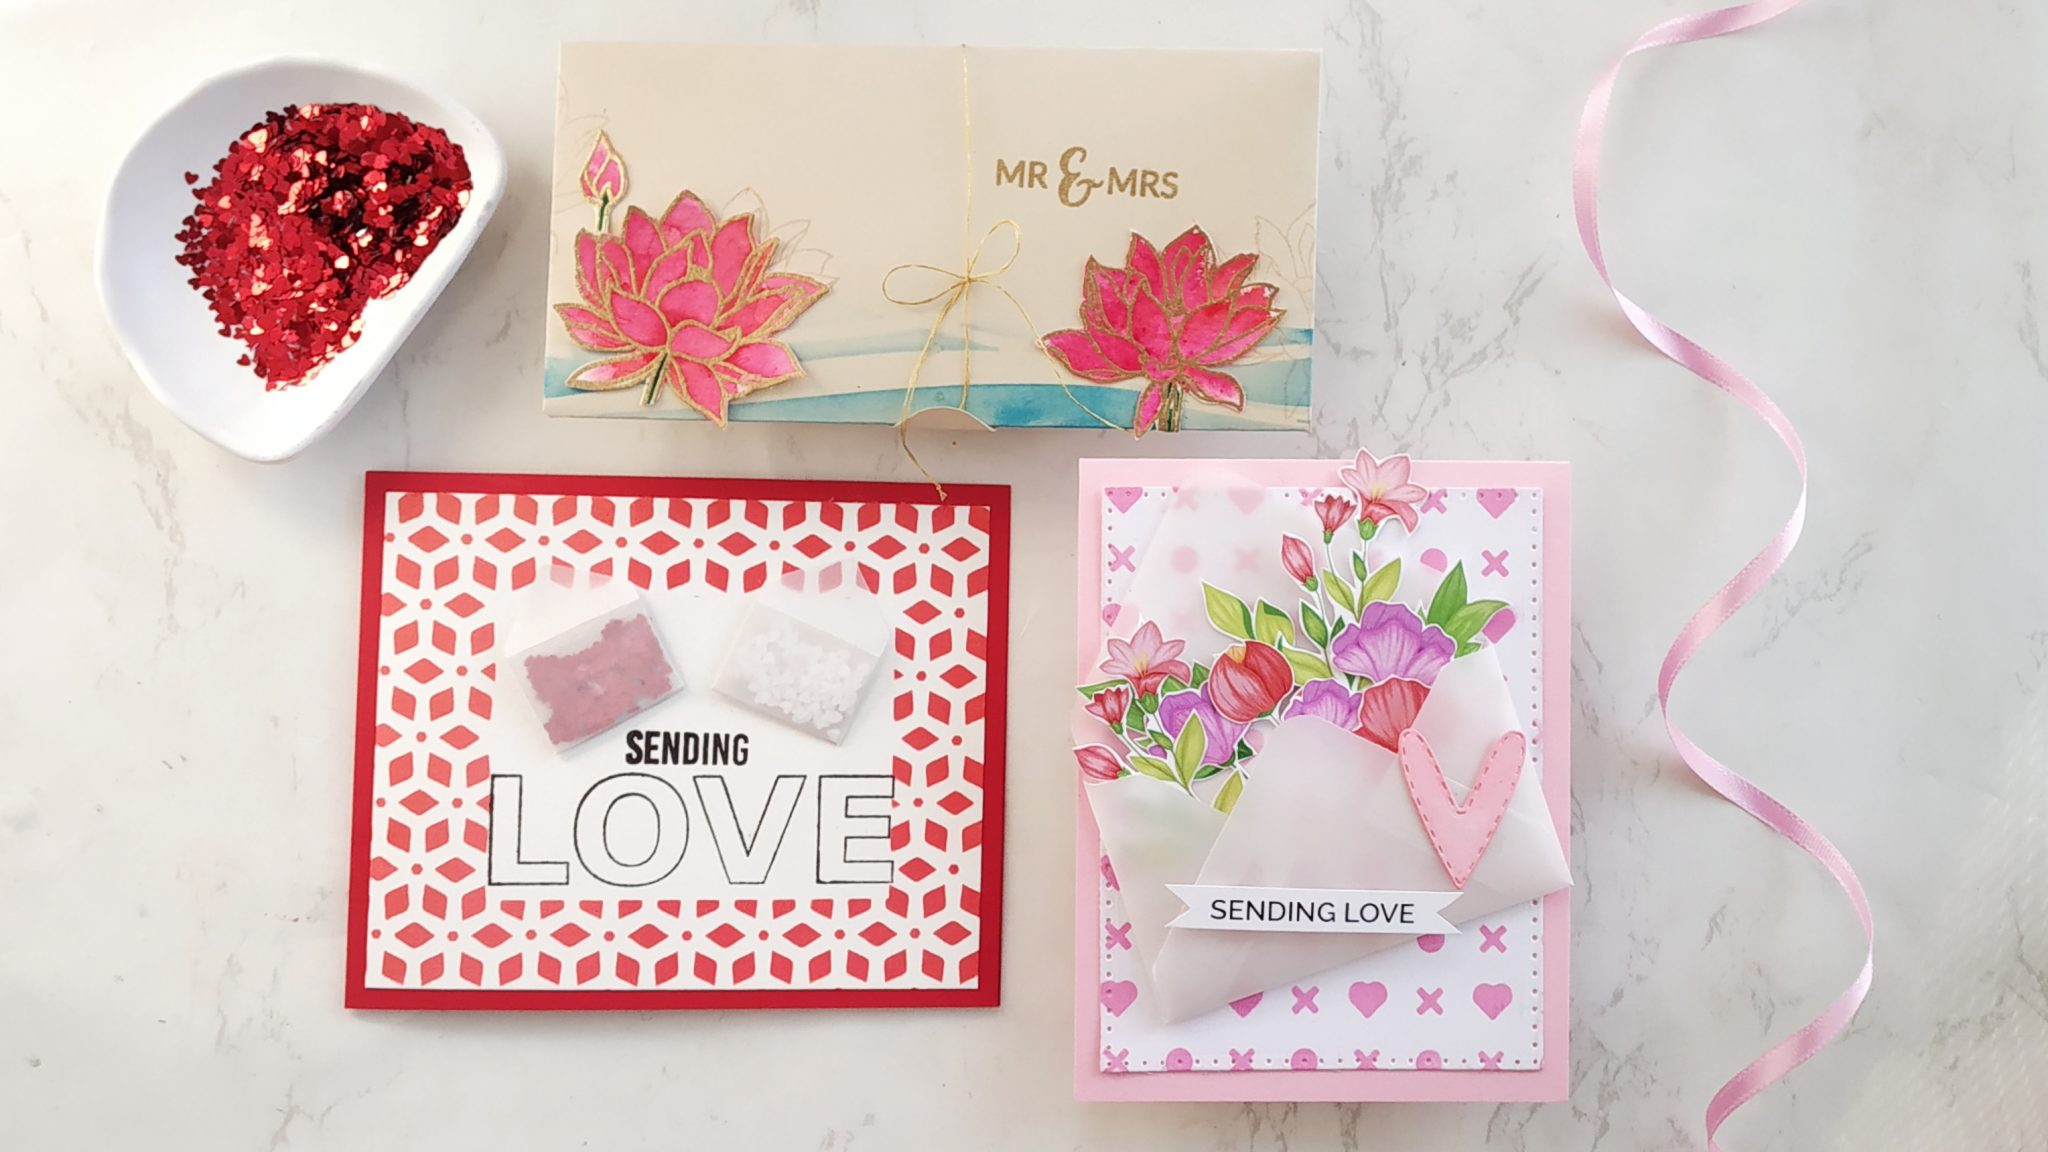 DIY envelopes - Send love in unique envelopes Video tutorial 7